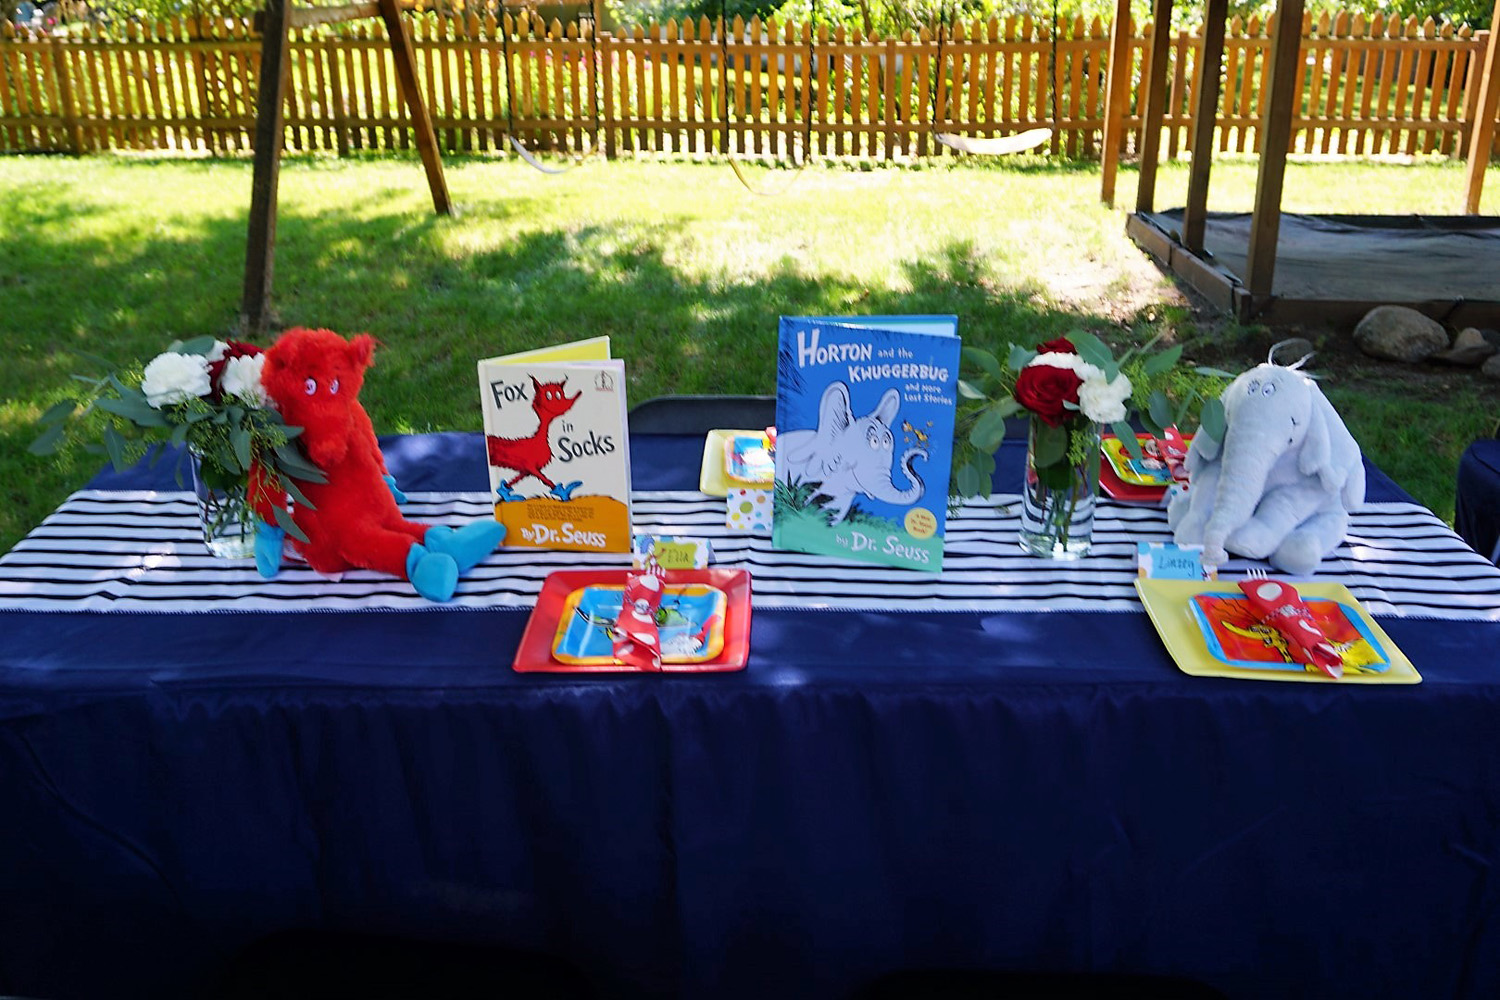 Use books and stuffed animals as centerpieces for a Dr. Seuss themed baby shower.